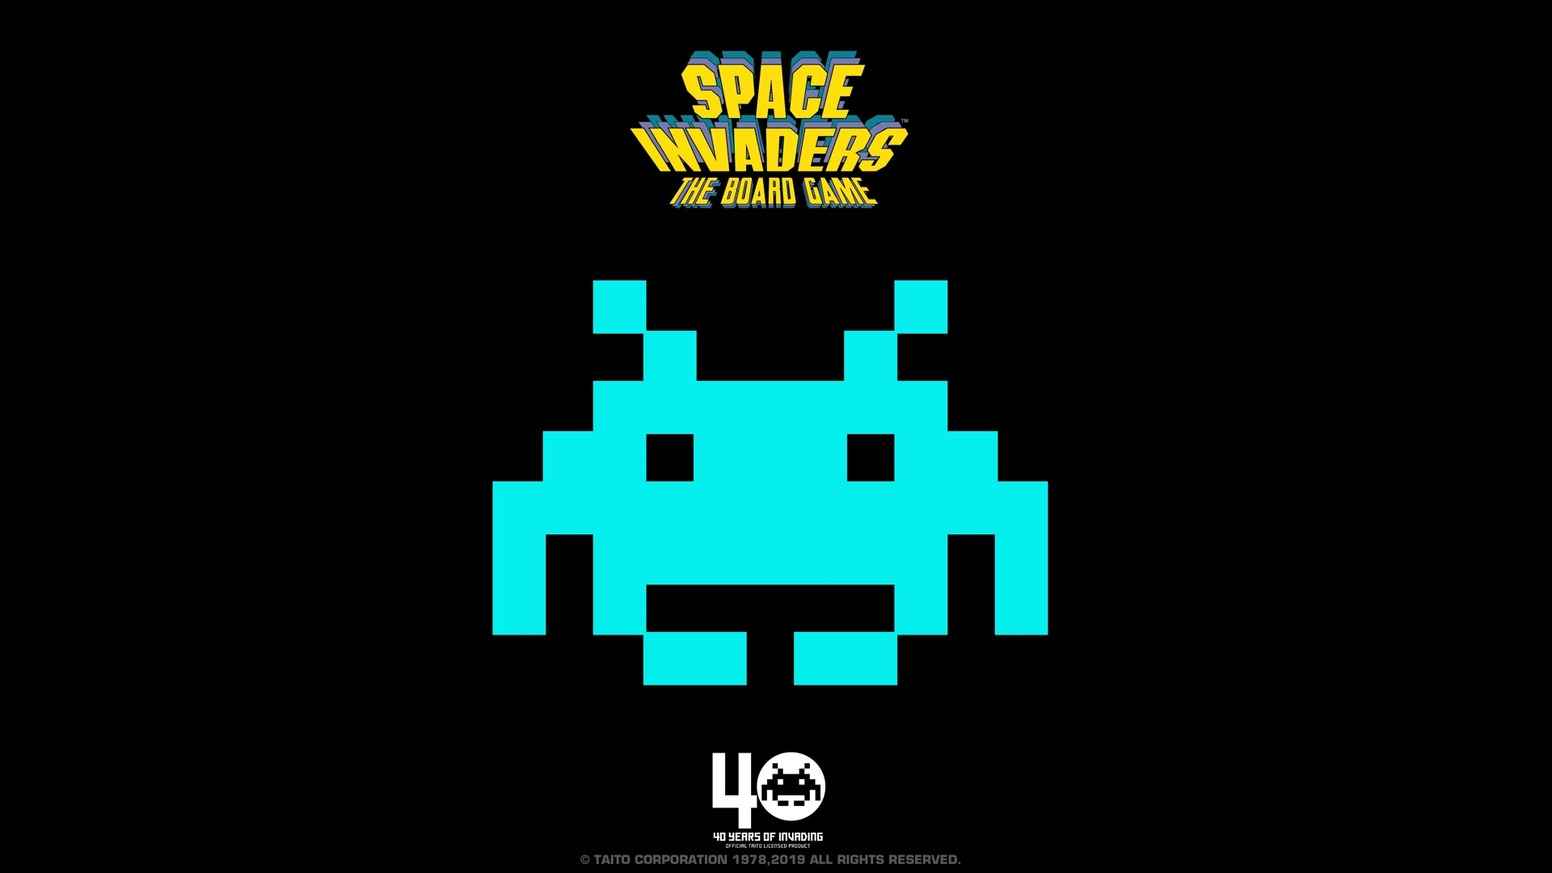 For more than 40 years TAITO's SPACE INVADERS attacked the video screens of the world. Now they'll invade your living room tables!